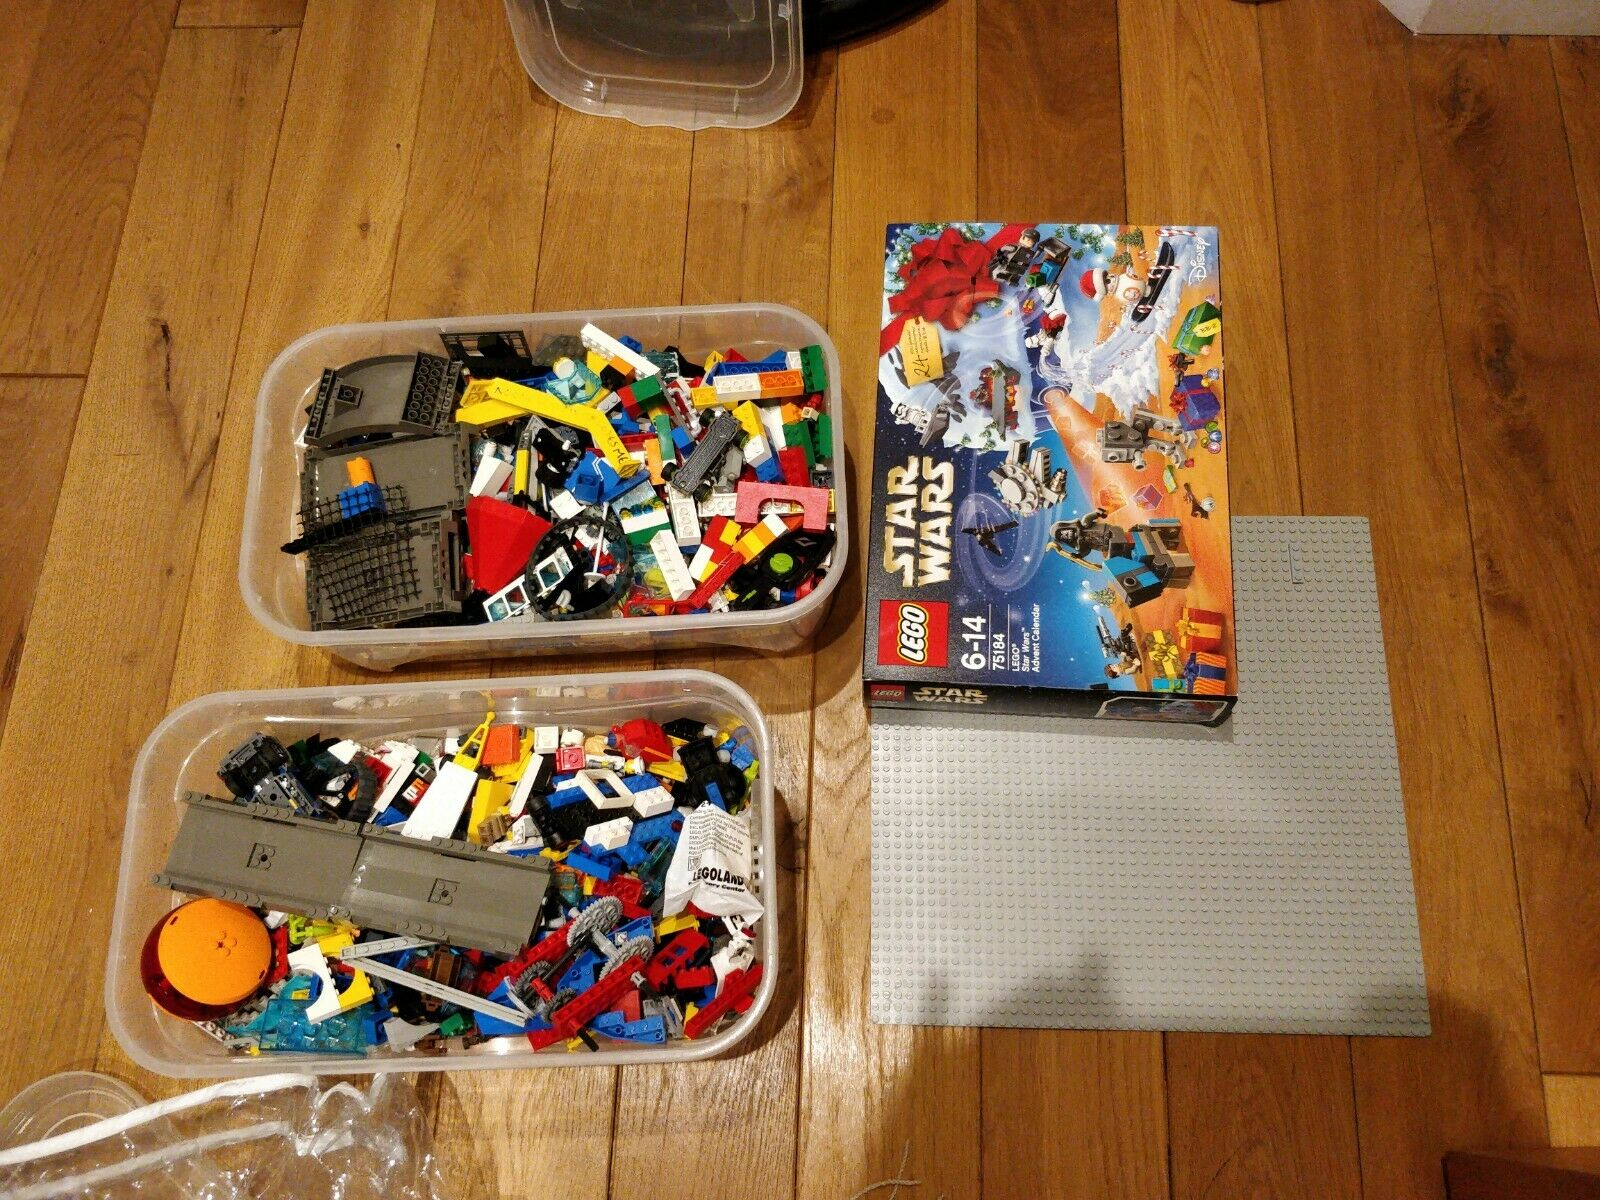 Mixed lego pieces 6.5 Kg With Figurines